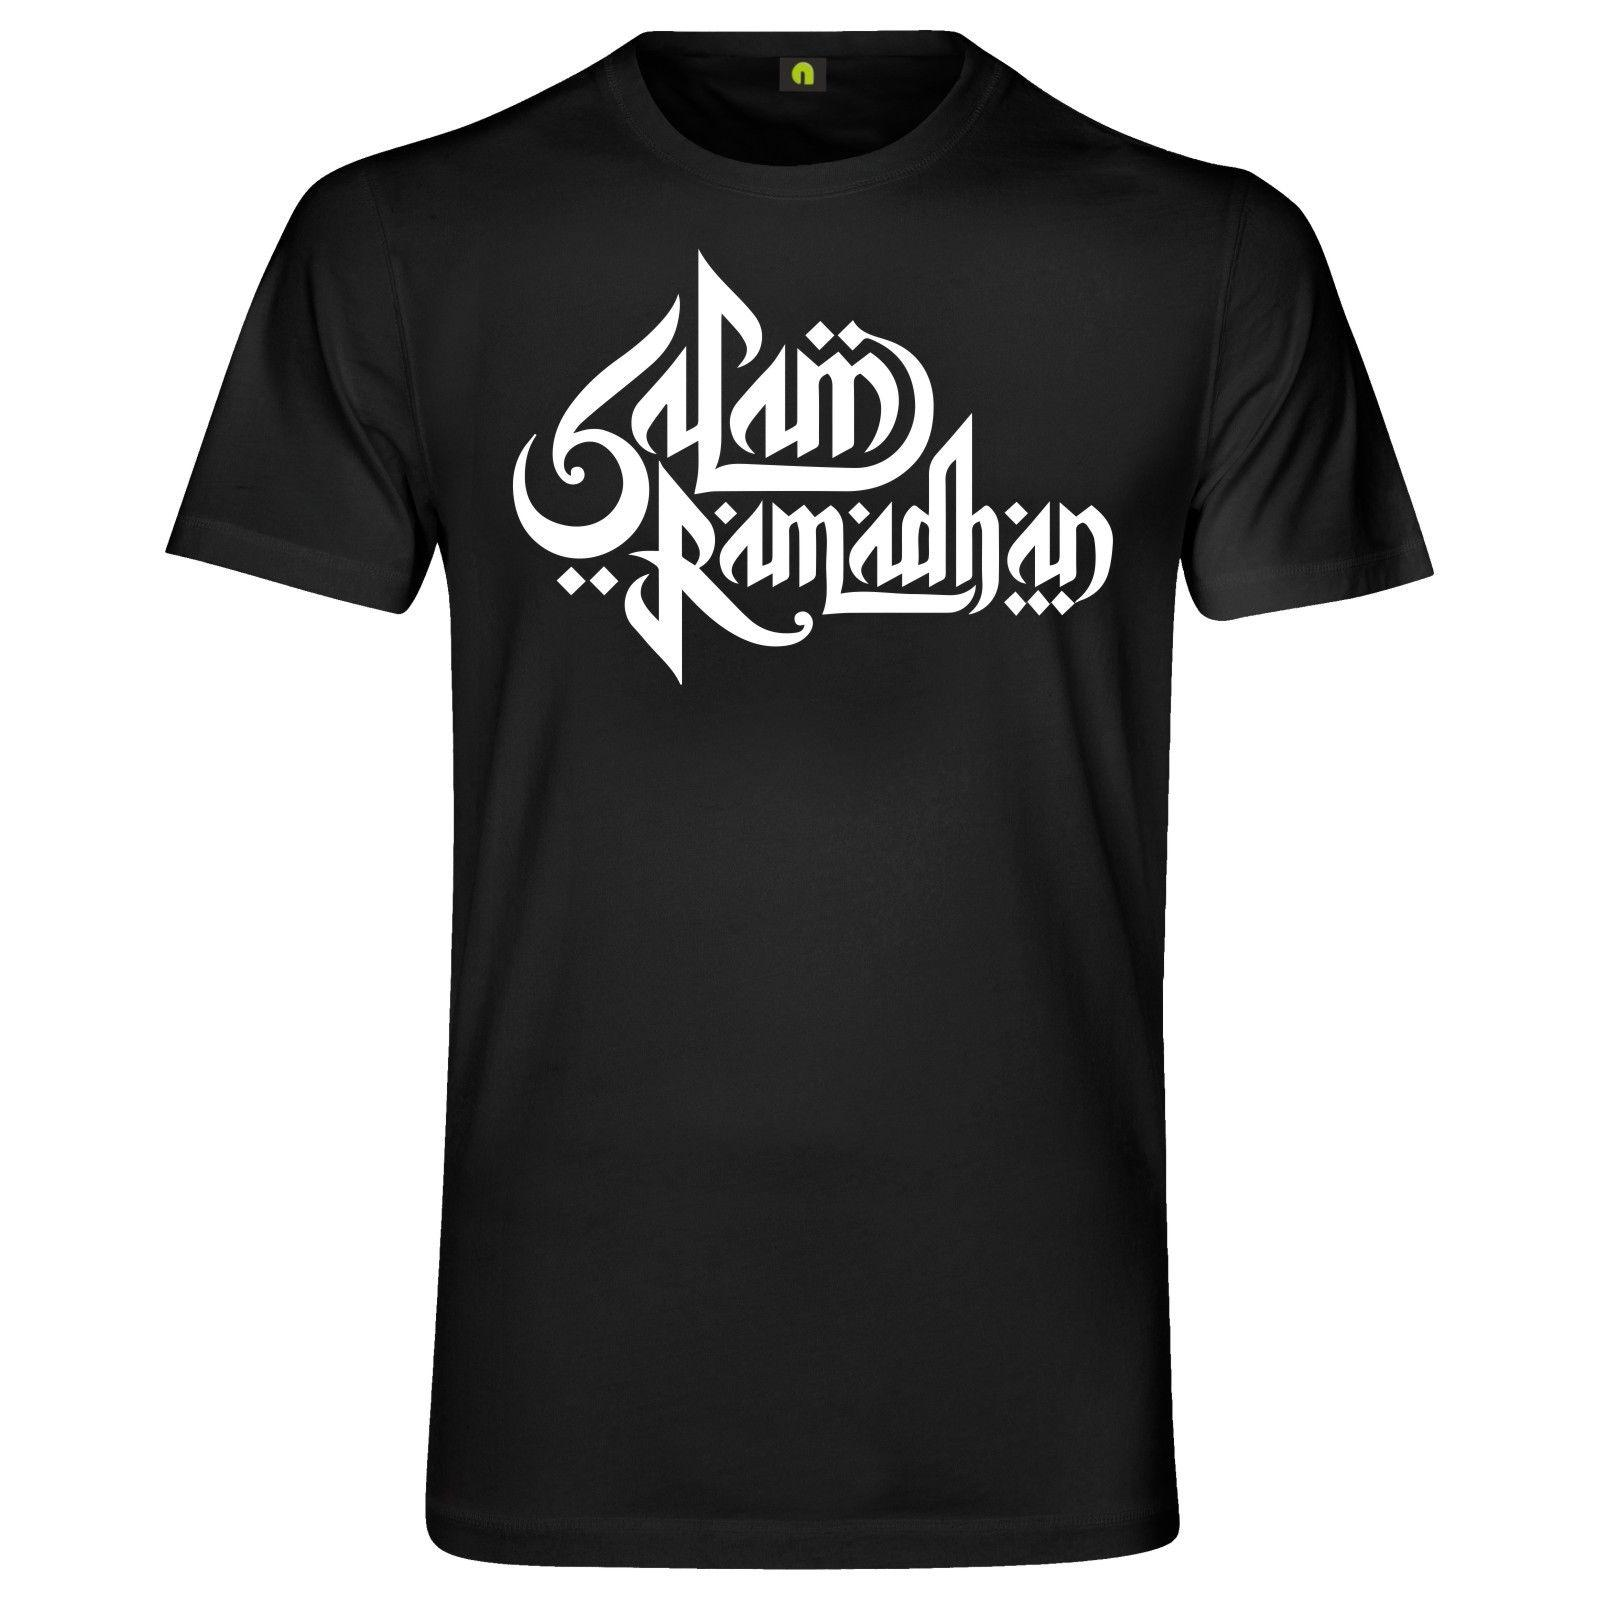 d56cf3abb Salam Ramadhan T Shirt | Fasten | Moslem | Muslim Islam Wholesale Discount  Araber Cool Casual Pride T Shirt Men Unisex New Fashion T Shirt Every Day  Funny ...